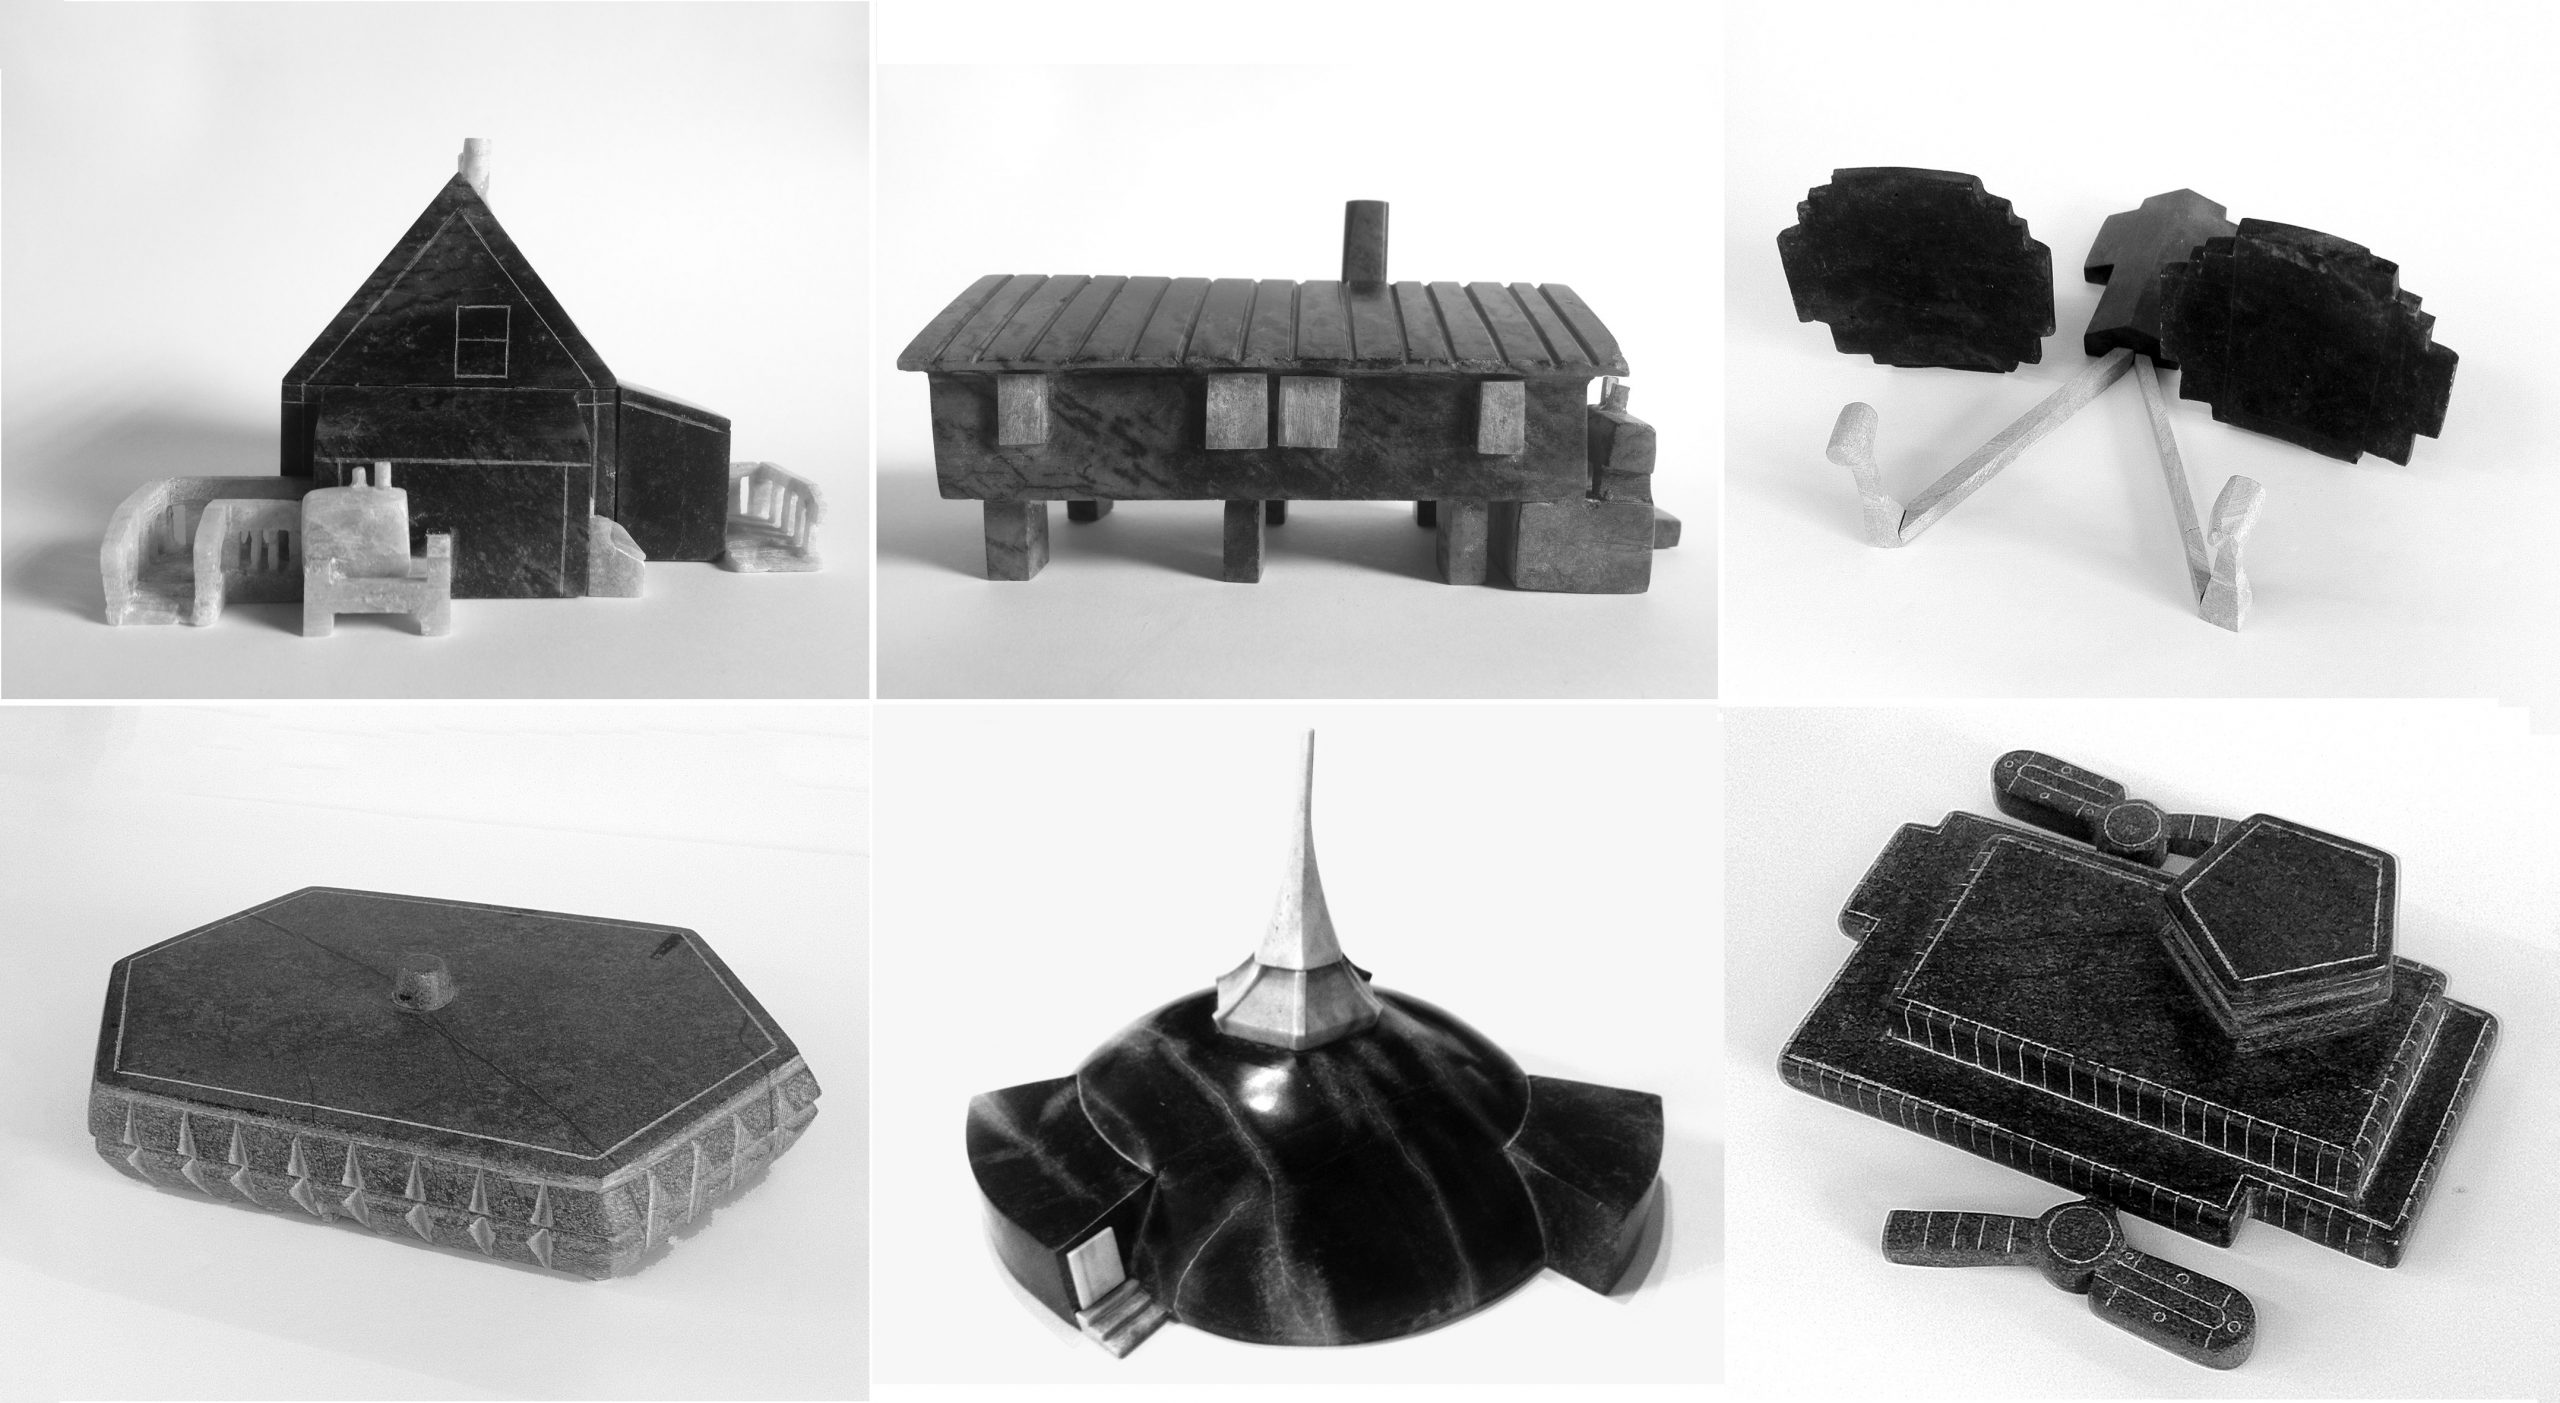 Photo credit: A series of 12 soapstone carvings by Inuit artists document key Nunavut buildings and typologies from the 20th century; courtesy Lateral Office.